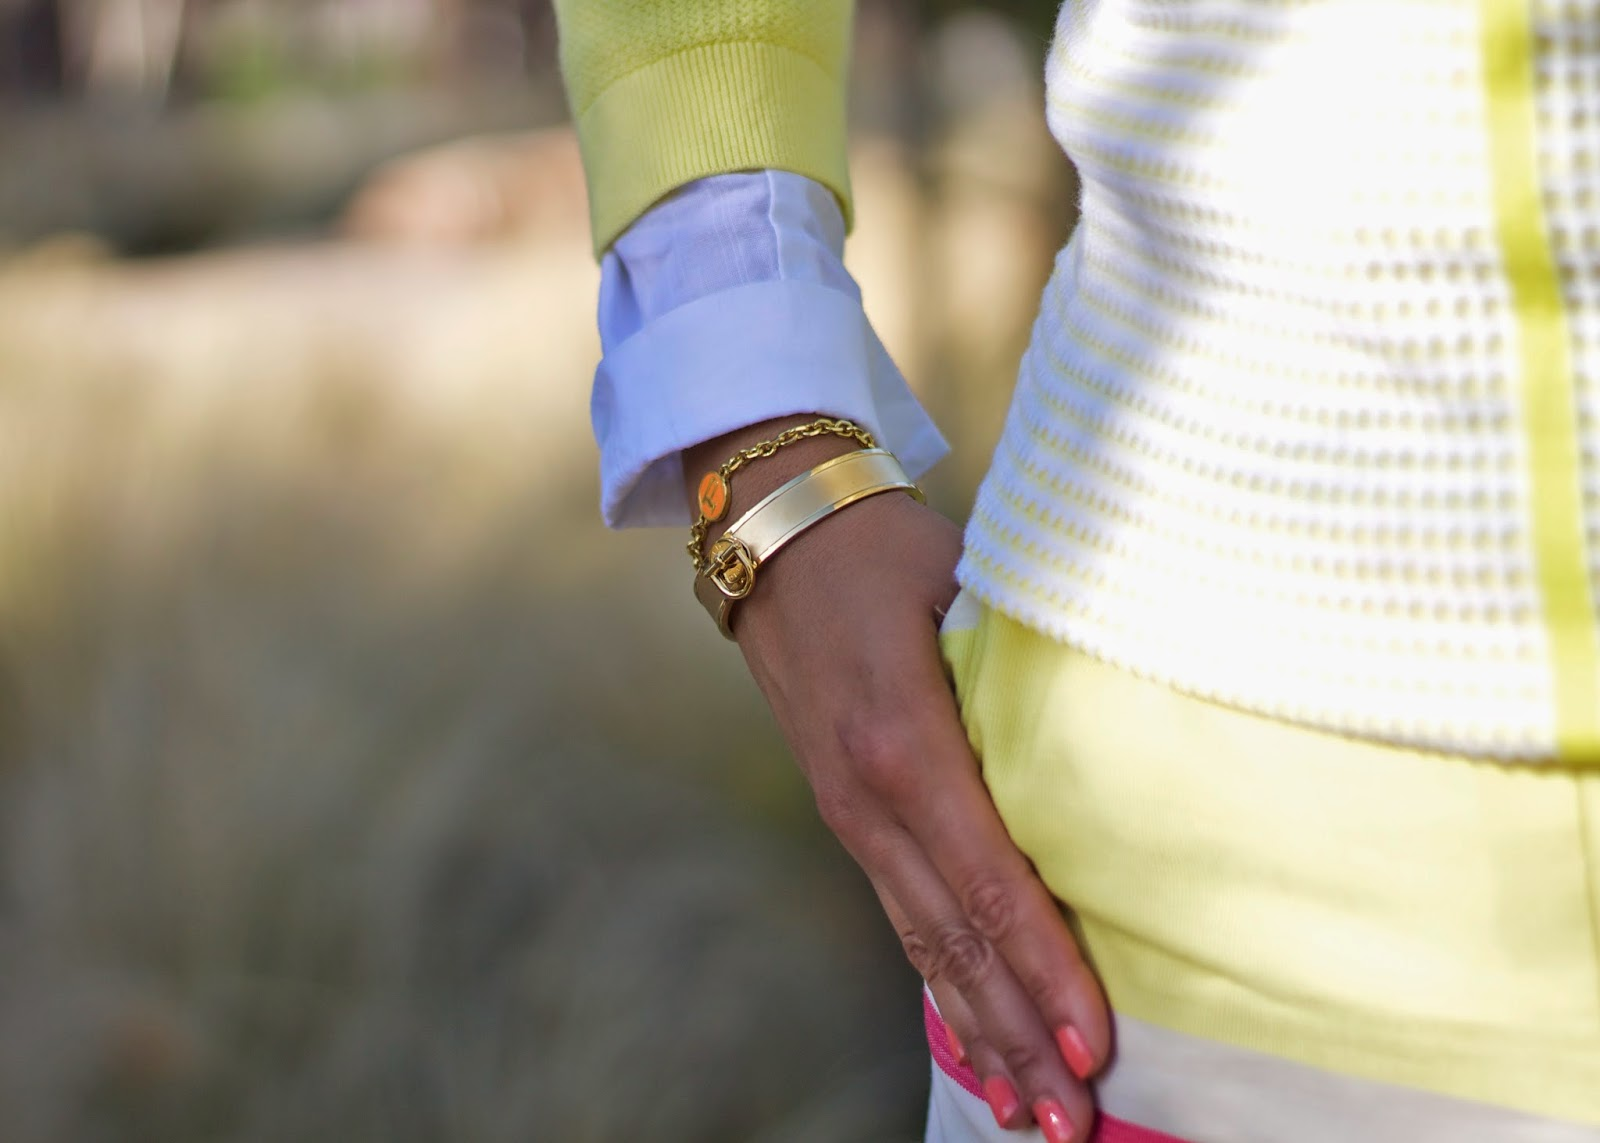 Tommy HIlfiger Gold Bangle, C Wonder monogram bracelet, yellow and orange outfit